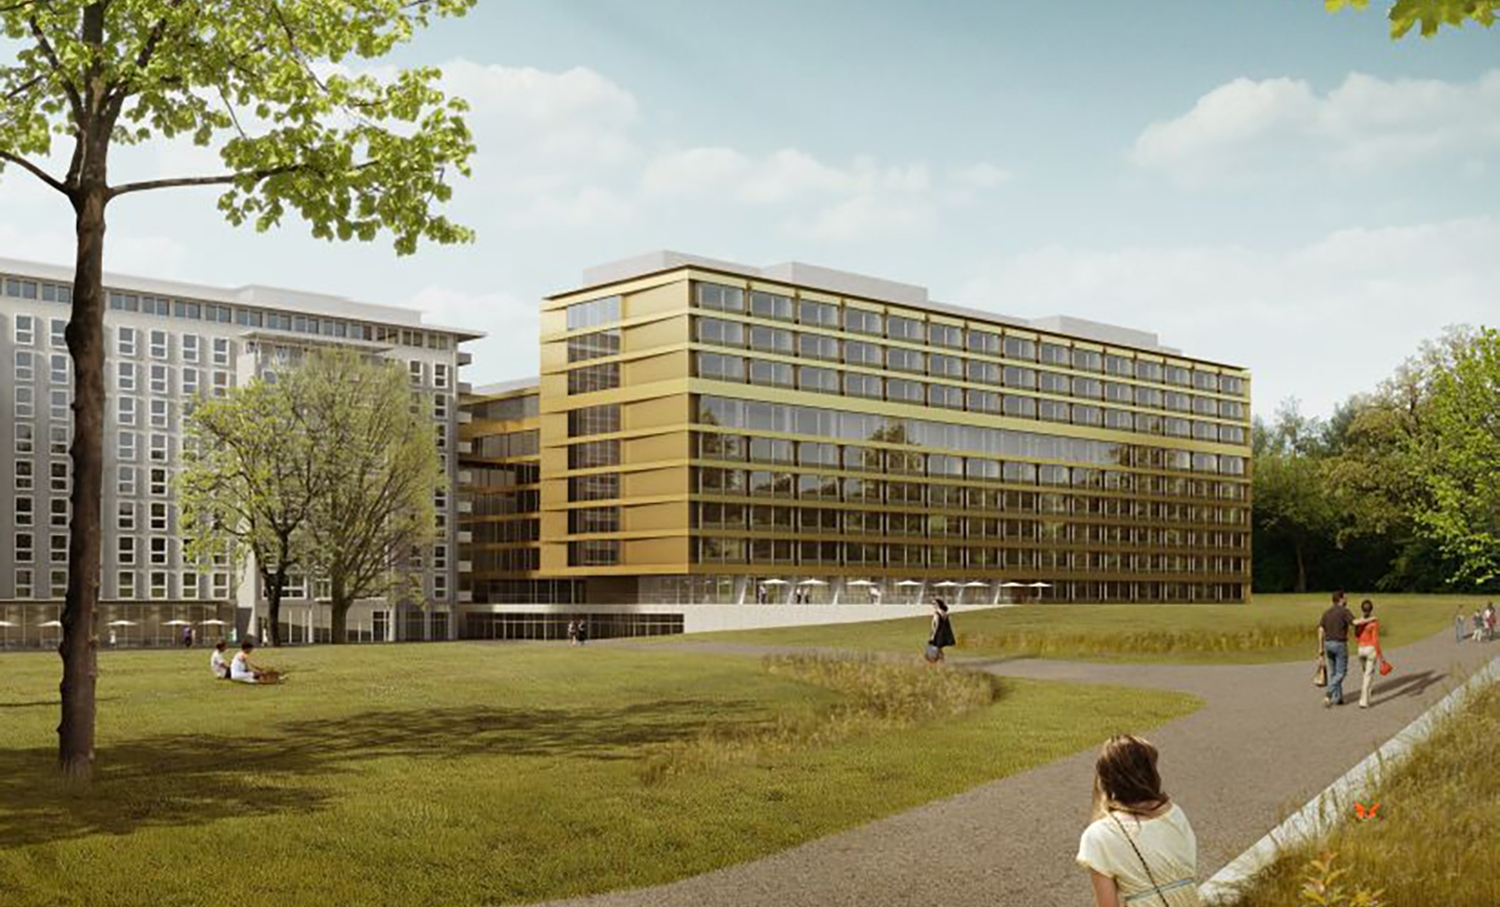 KS Winterthur_Visualisierung_Architekt_2_bearb.jpg